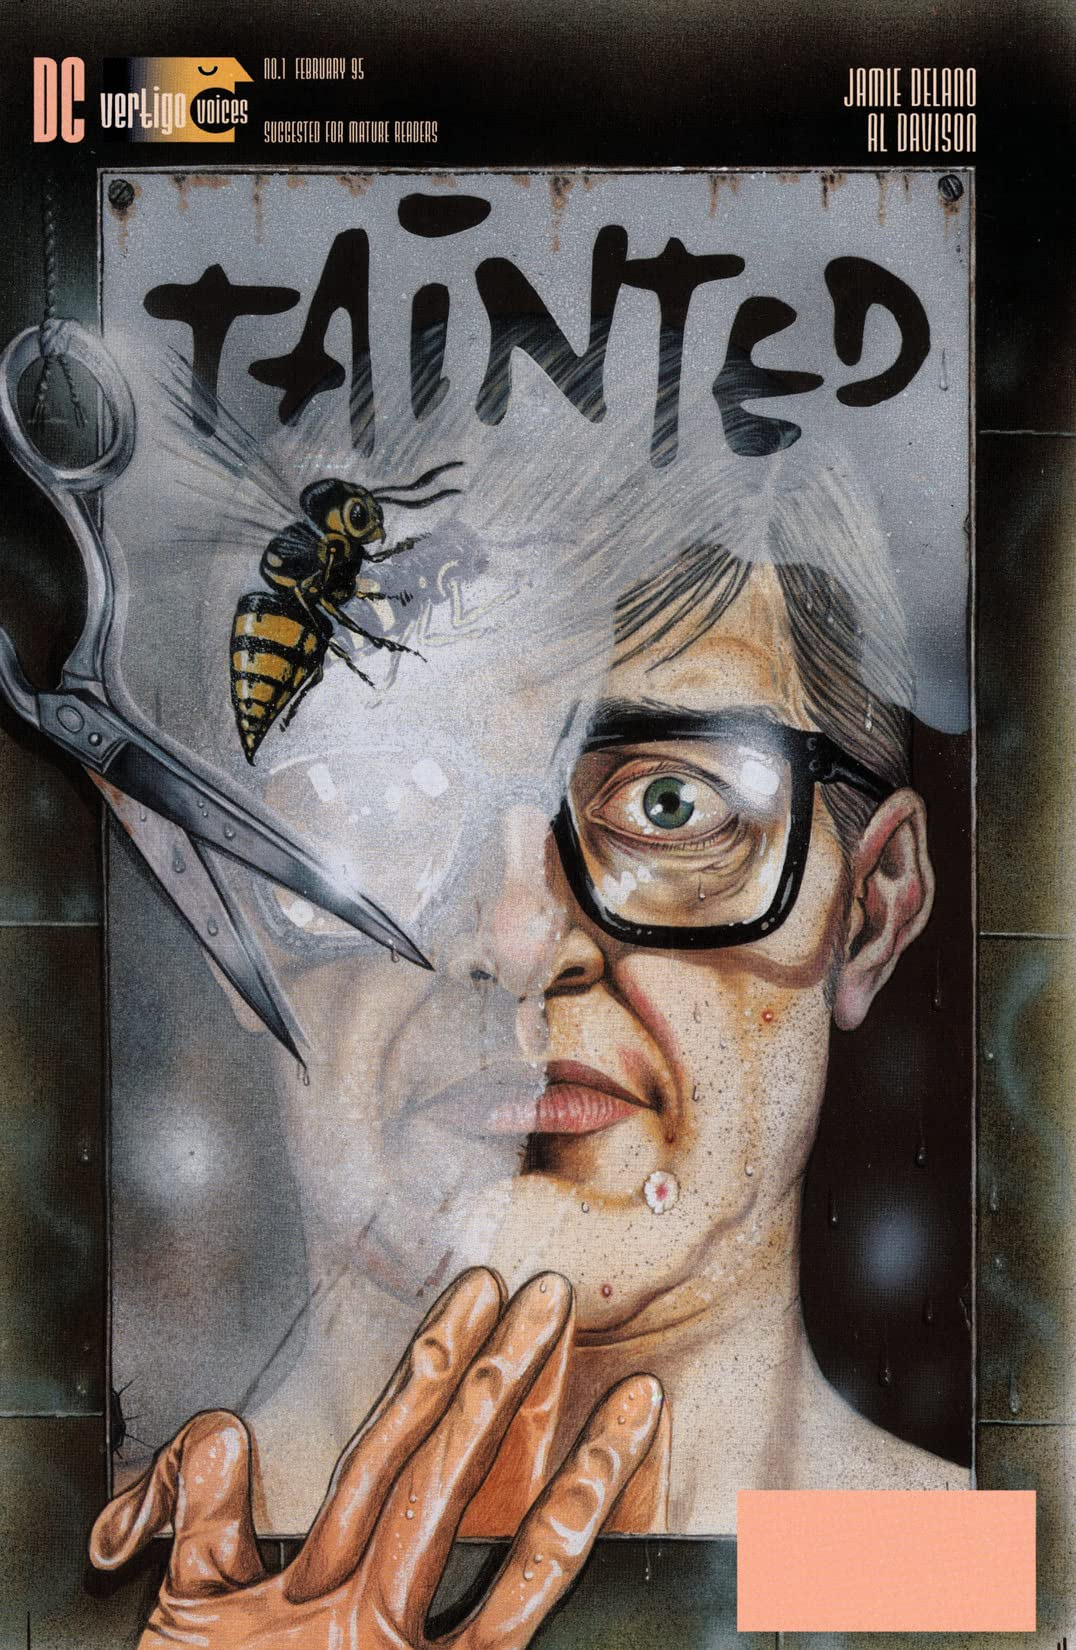 Vertigo Voices: Tainted (1994) #1